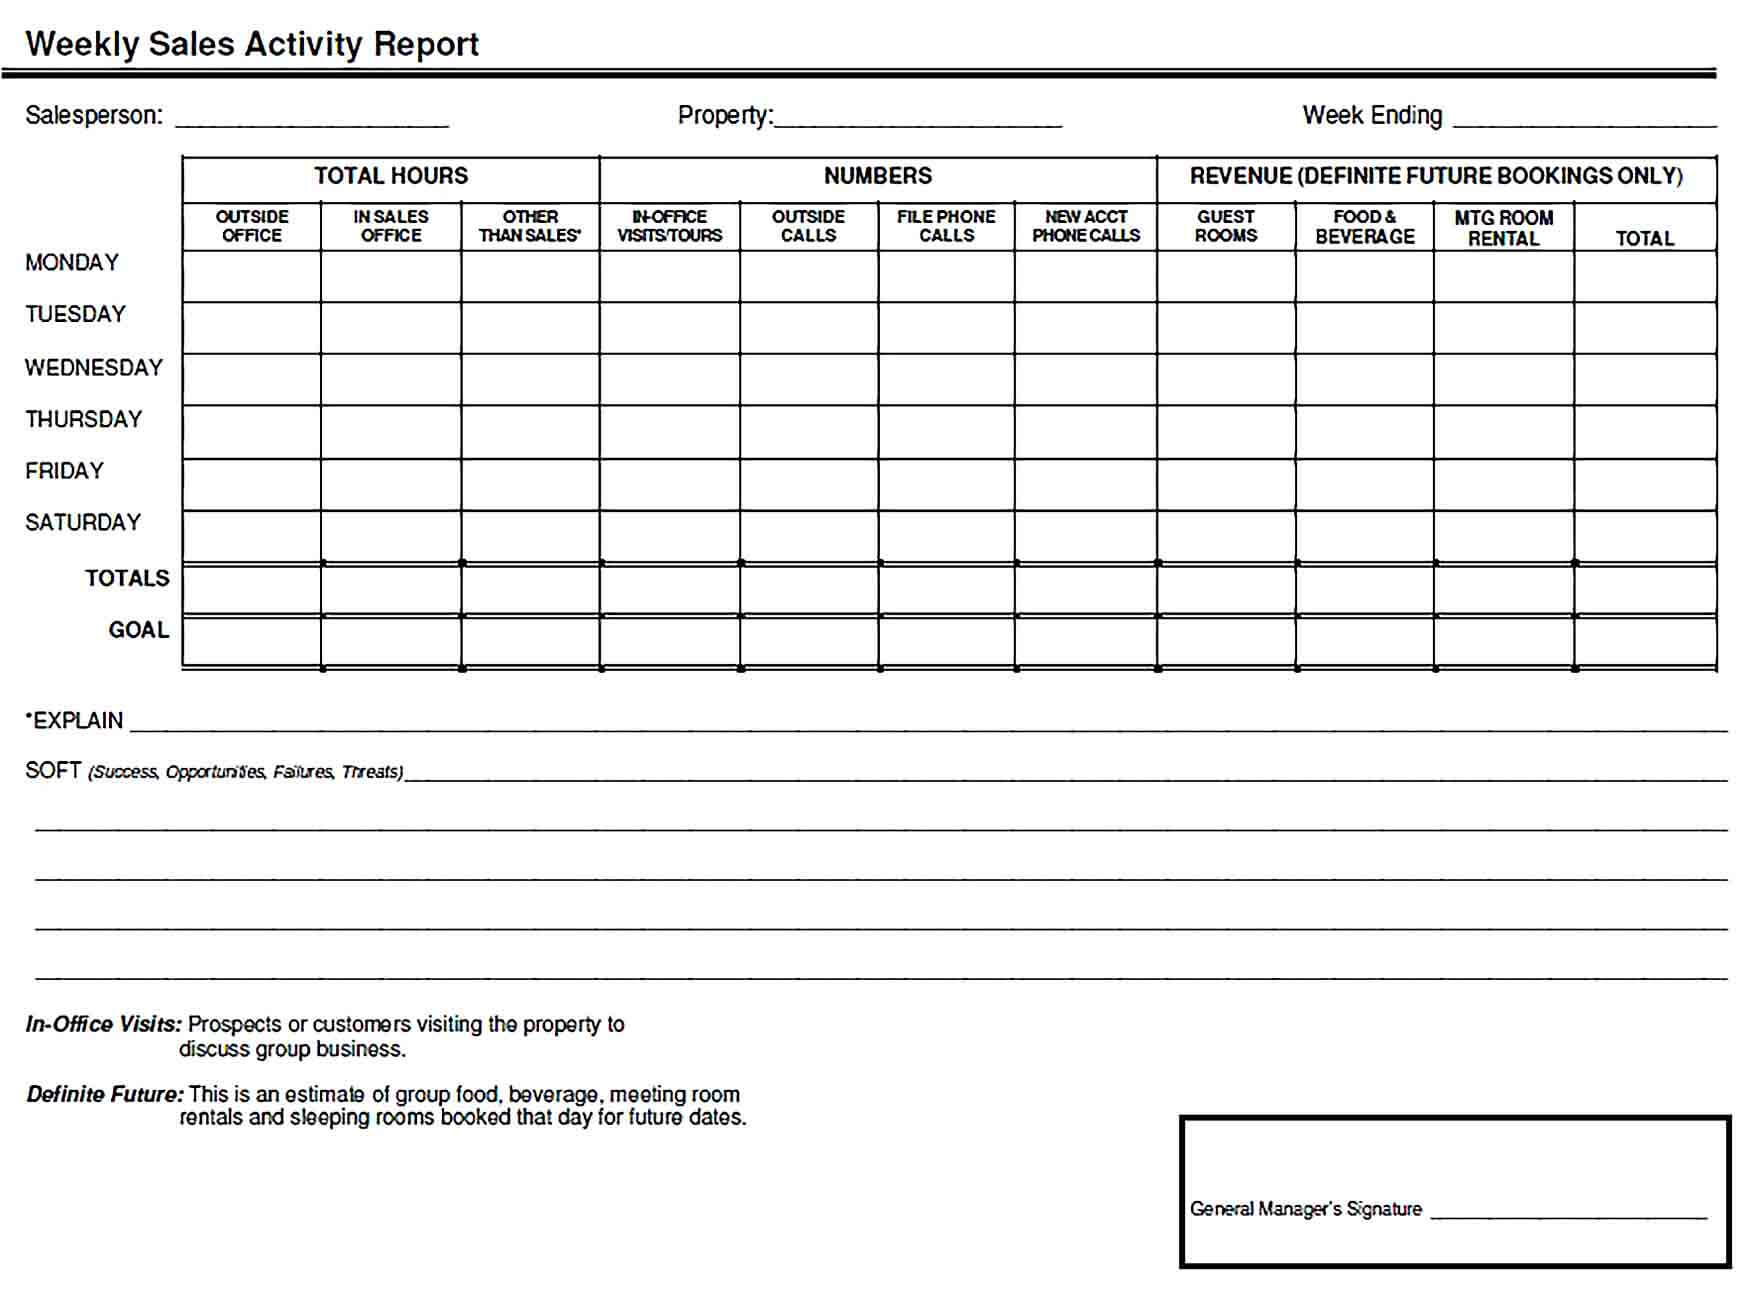 Sample Weekly Sales Activity Report Word Template